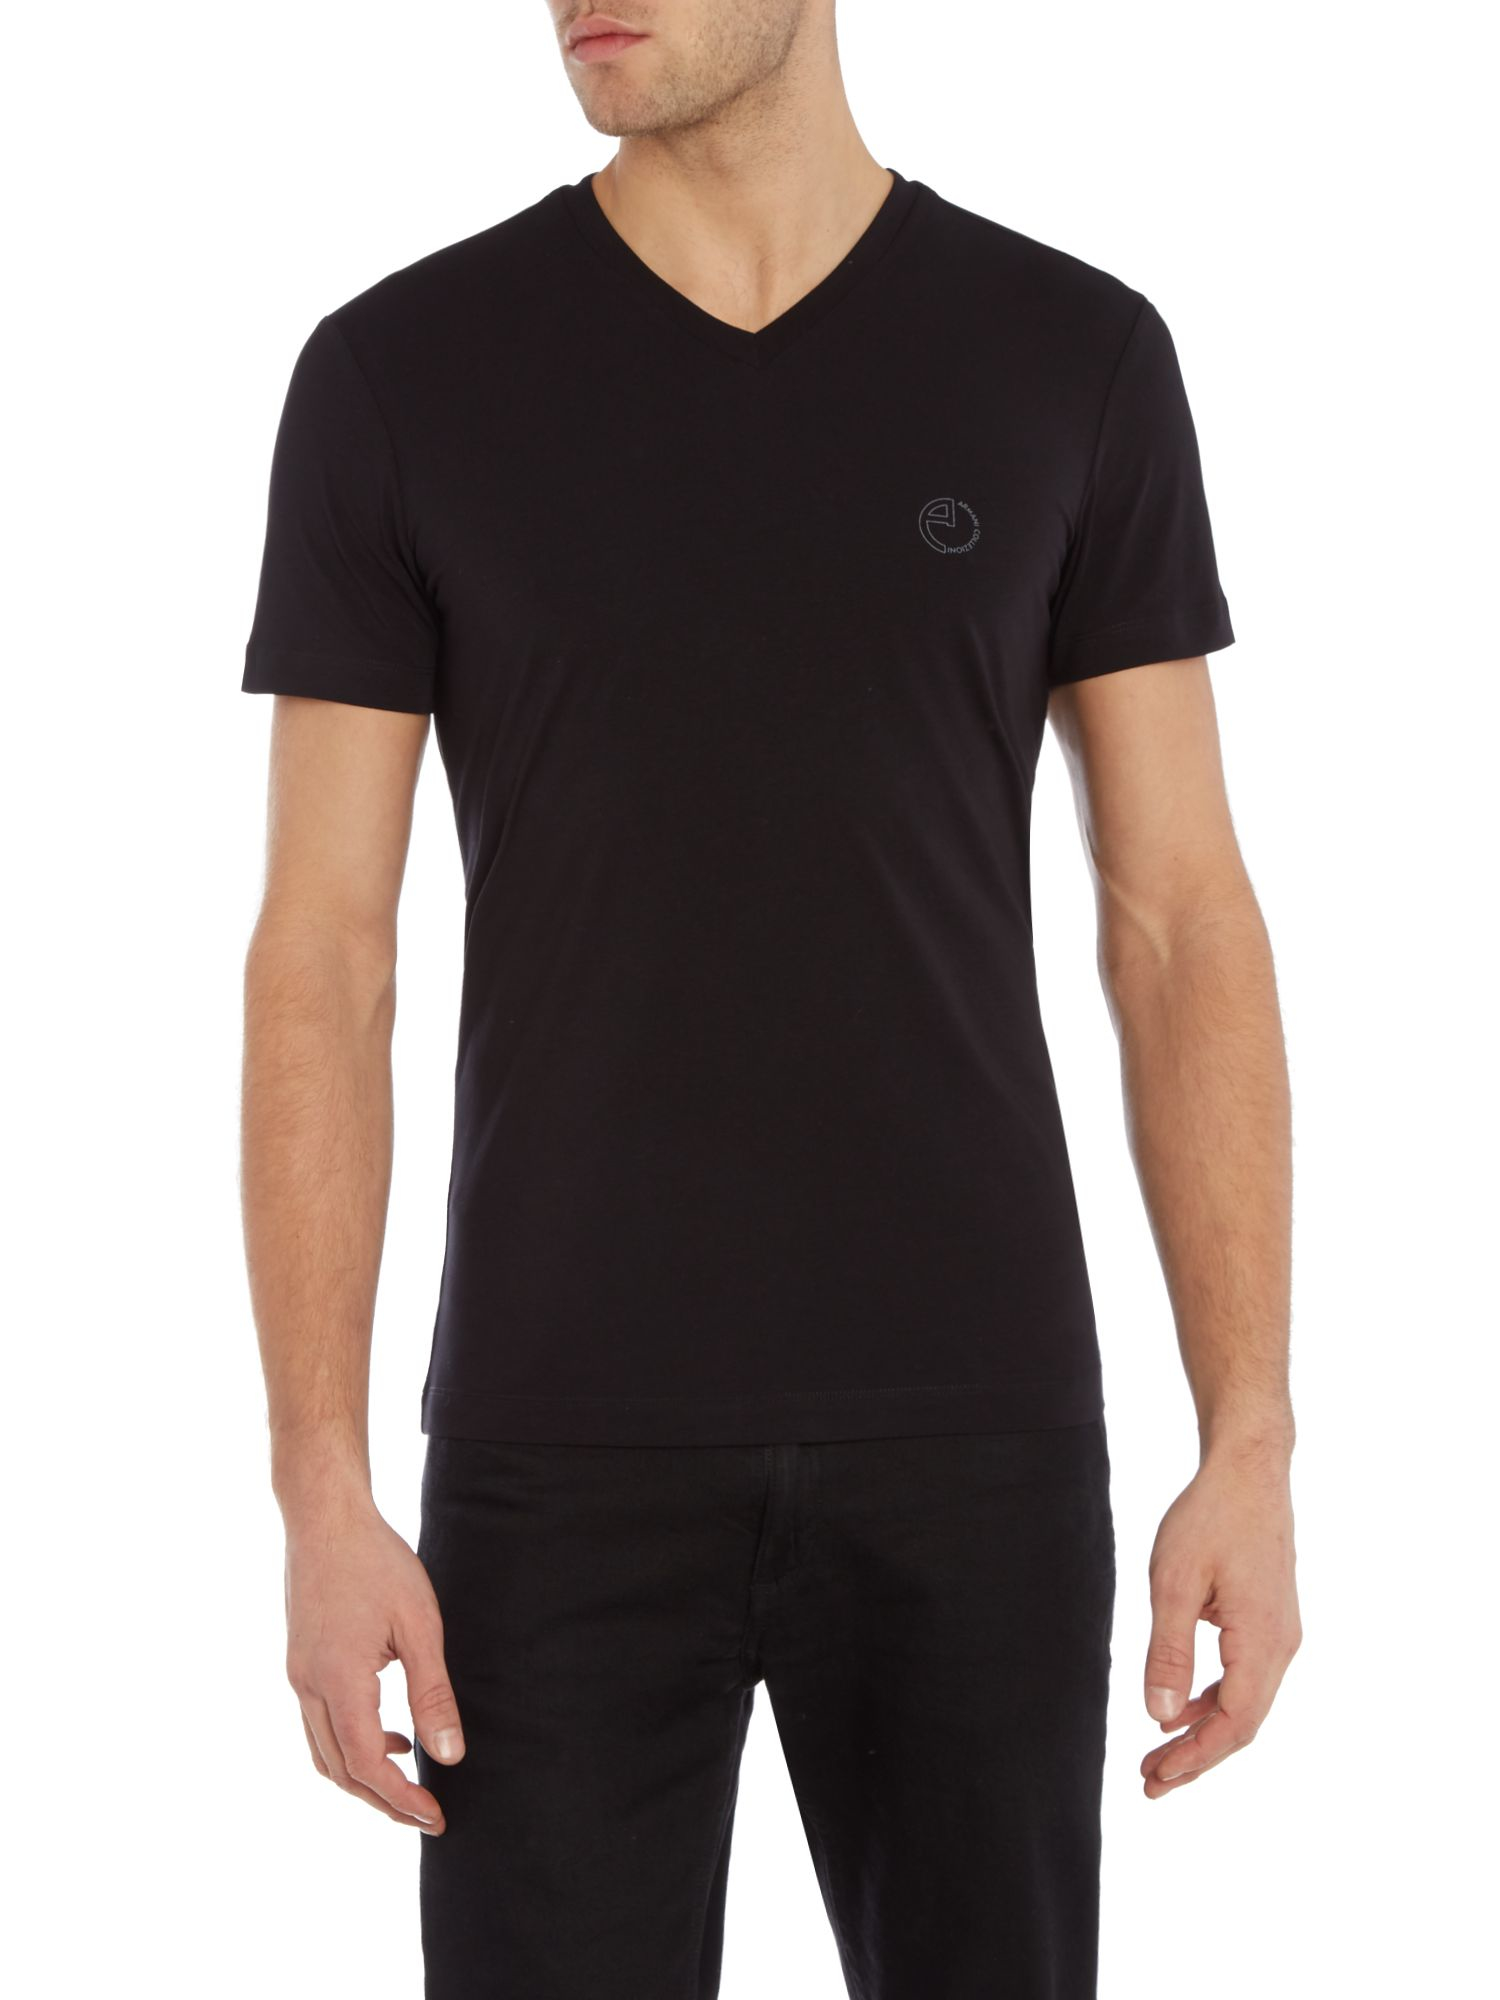 Armani v neck logo t shirt in black for men lyst V neck black t shirt